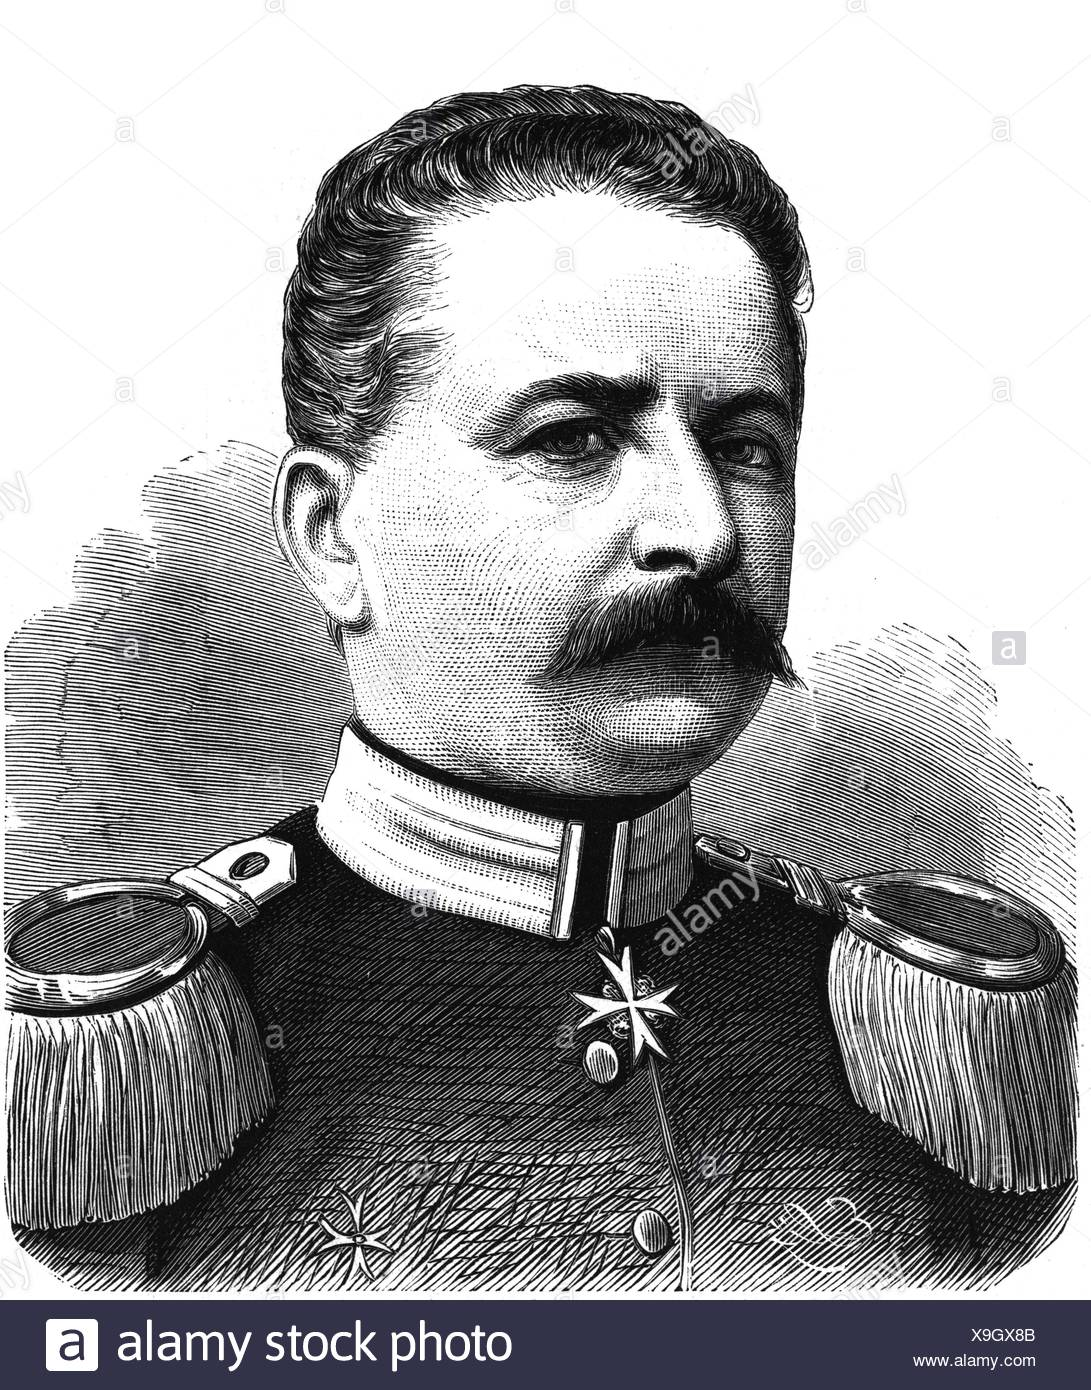 Waldersee, Alfred Count von 8.4.1832 - 5.3.1904, German general, Charge d'affaires of the German empire in Paris 1871 - 1873, portrait, wood engraving, 1871, Artist's Copyright has not to be cleared - Stock Image